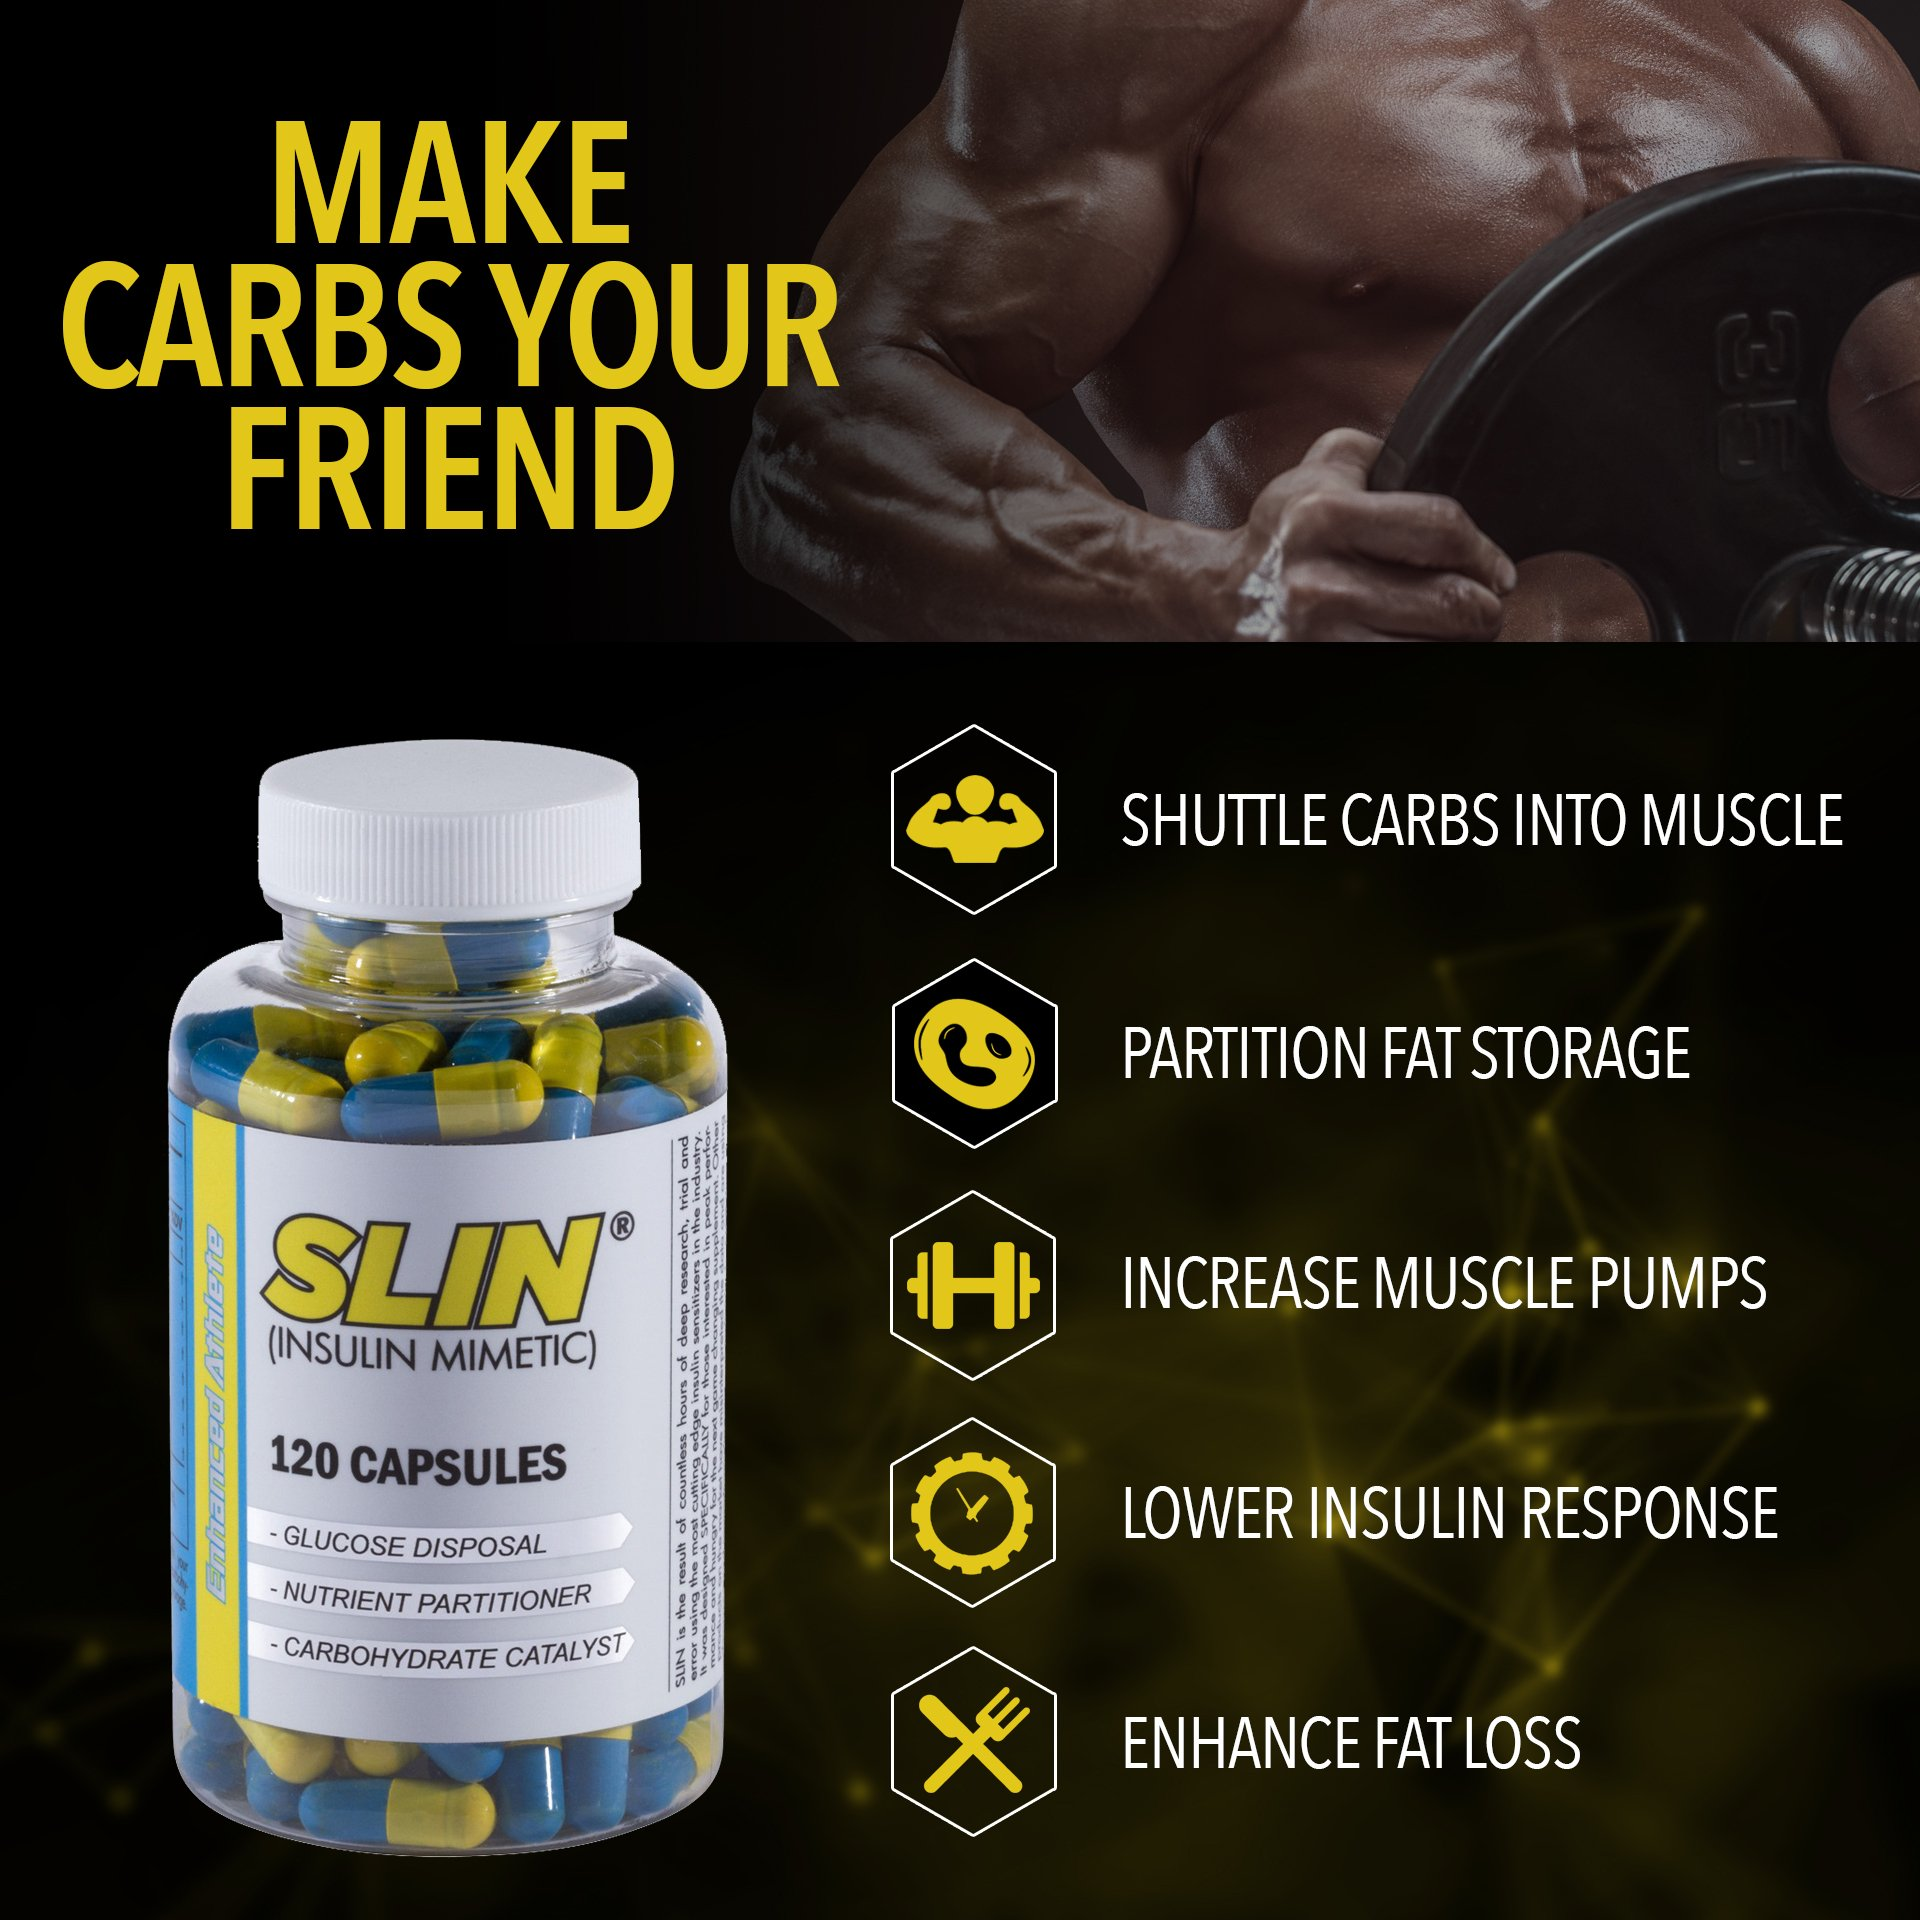 Enhanced Athlete Slin - Carb Blocker, Insulin Mimetic and Nutrient Practitioner to Support Muscle Strength - Promotes Turning Carbohydrates into Muscle - 120 Capsules by Enhanced Athlete (Image #5)